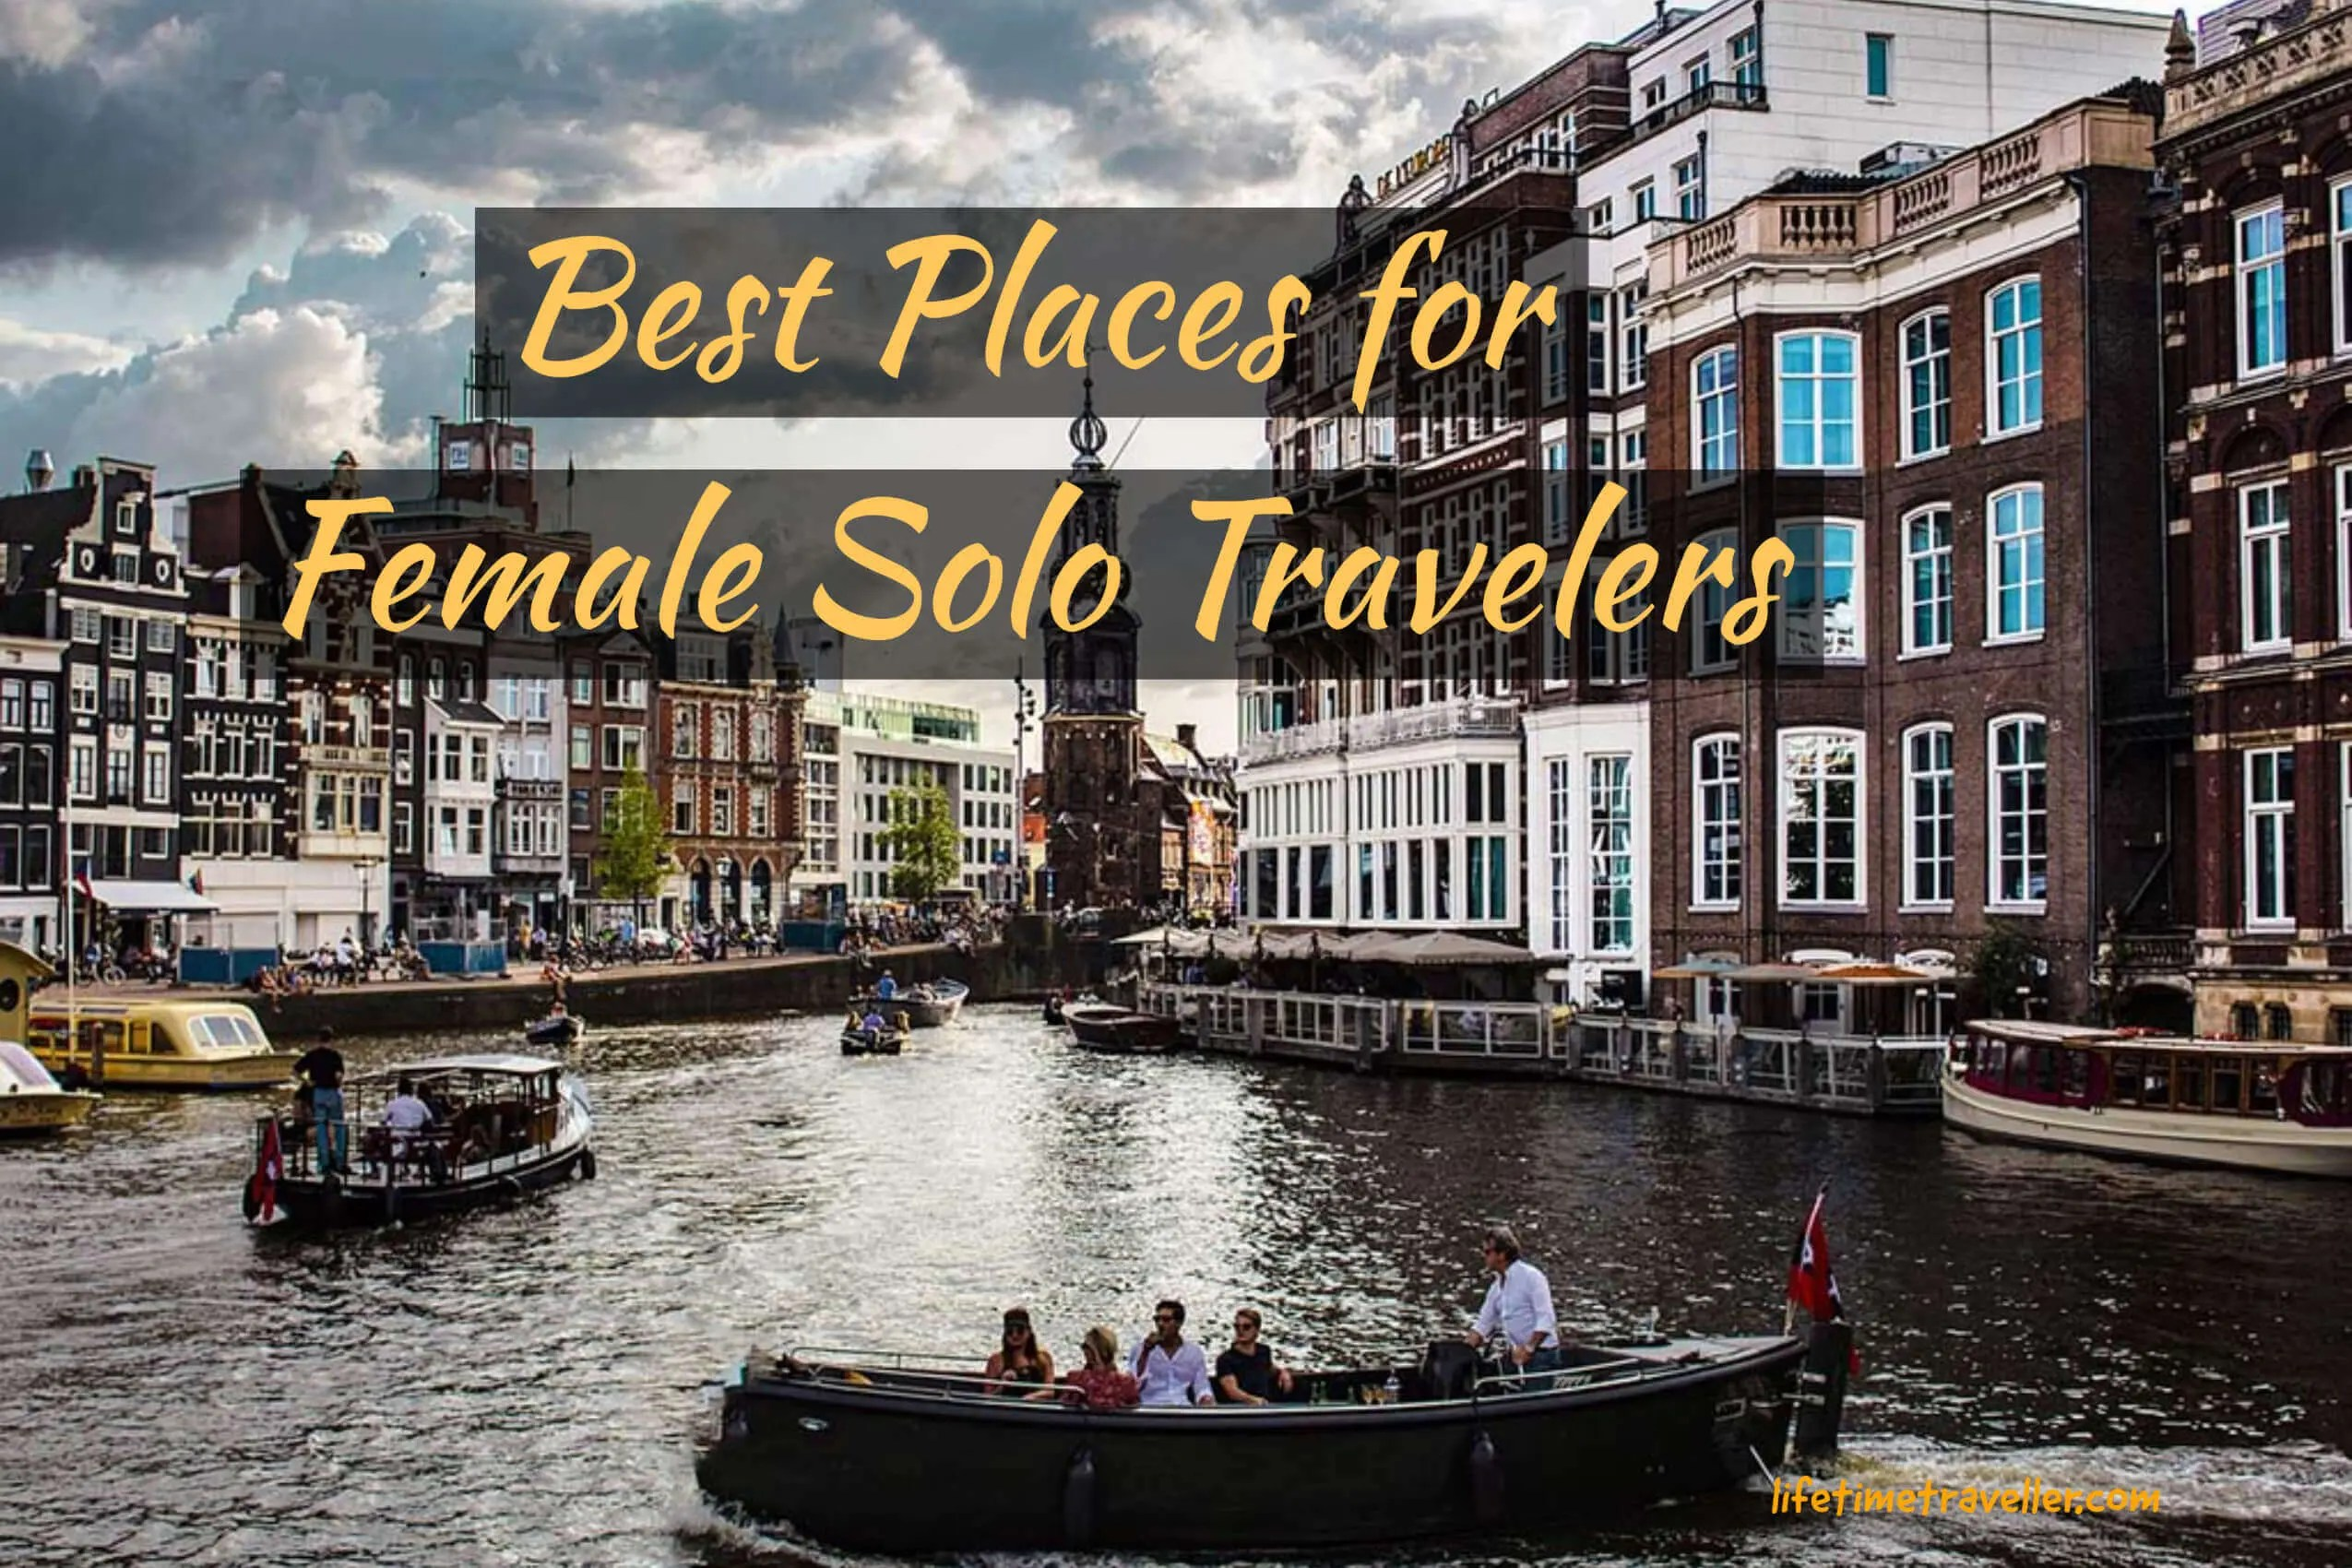 10 Best Places for Female Solo Travelers